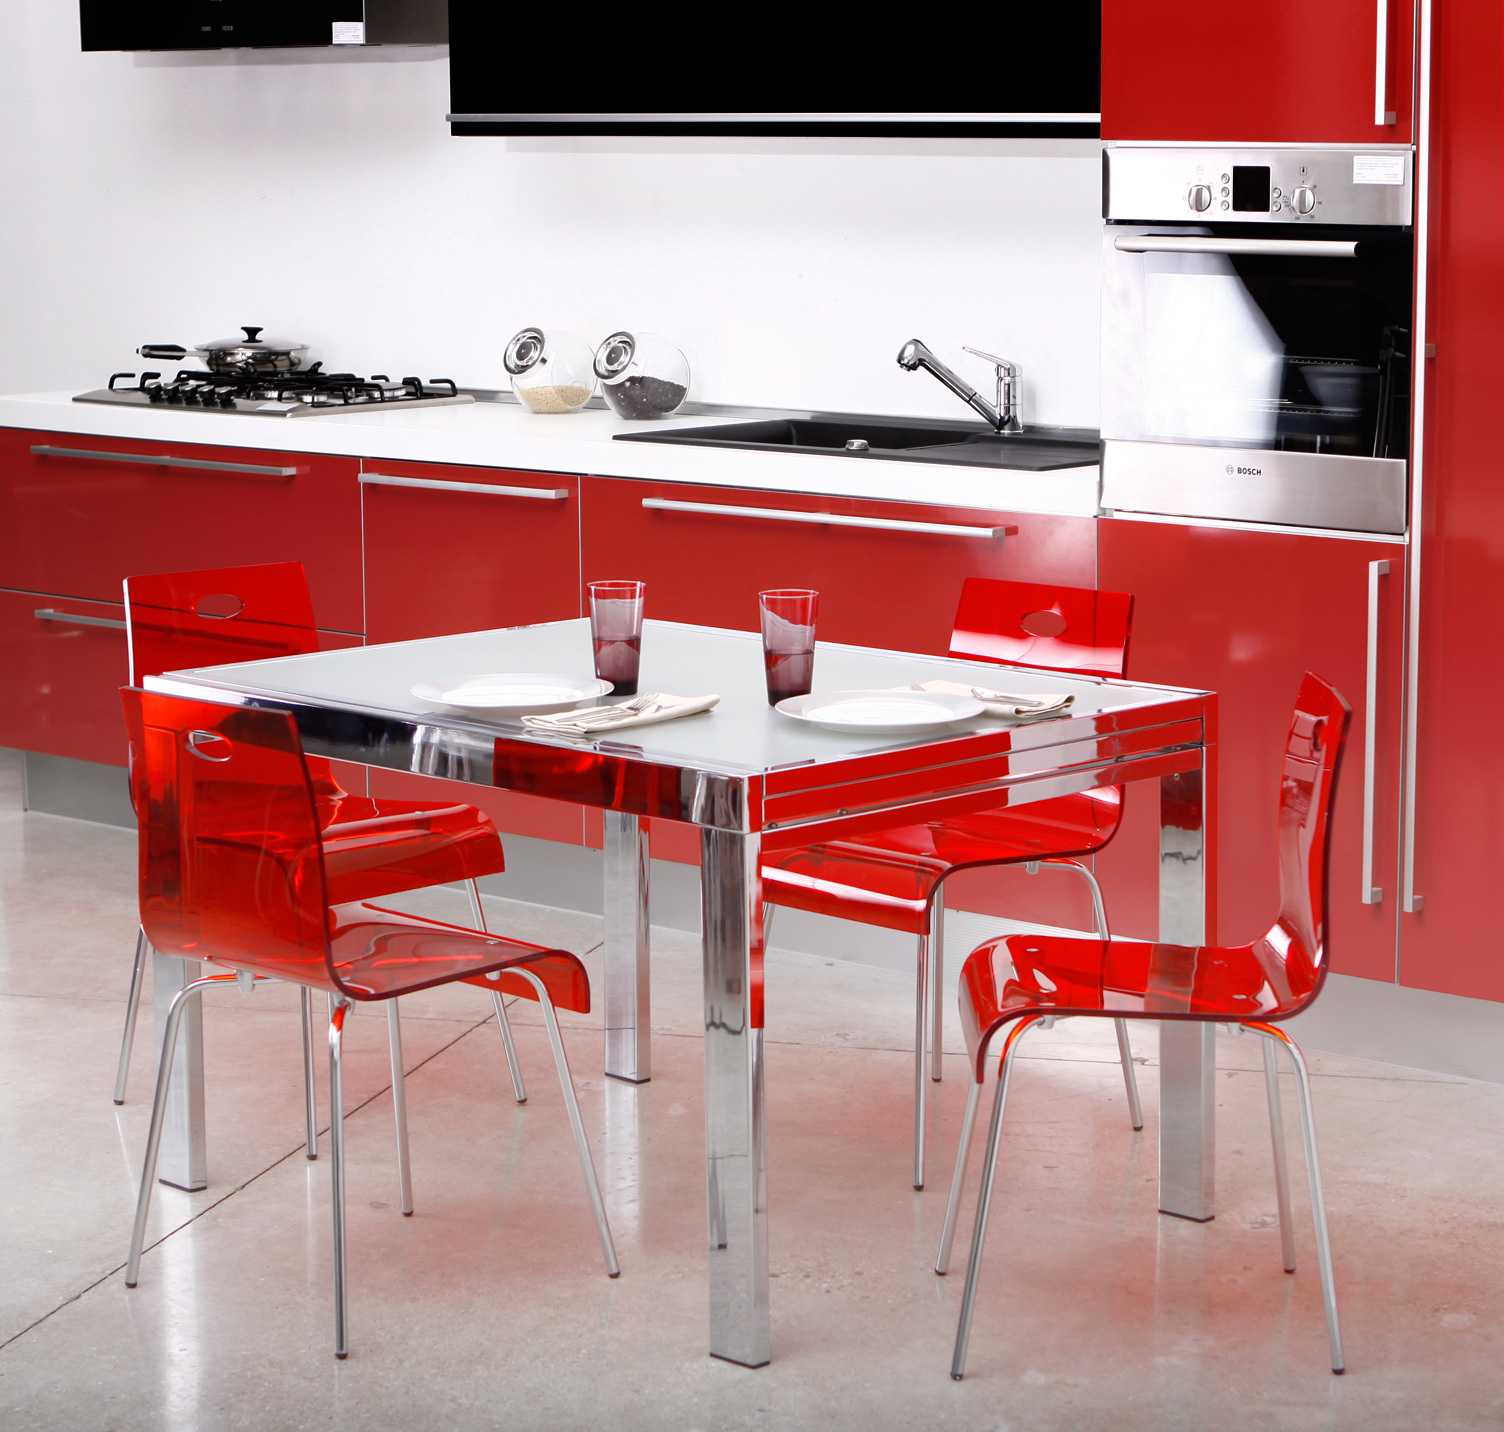 Chaise cuisine rouge - Chaise cuisine rouge ...